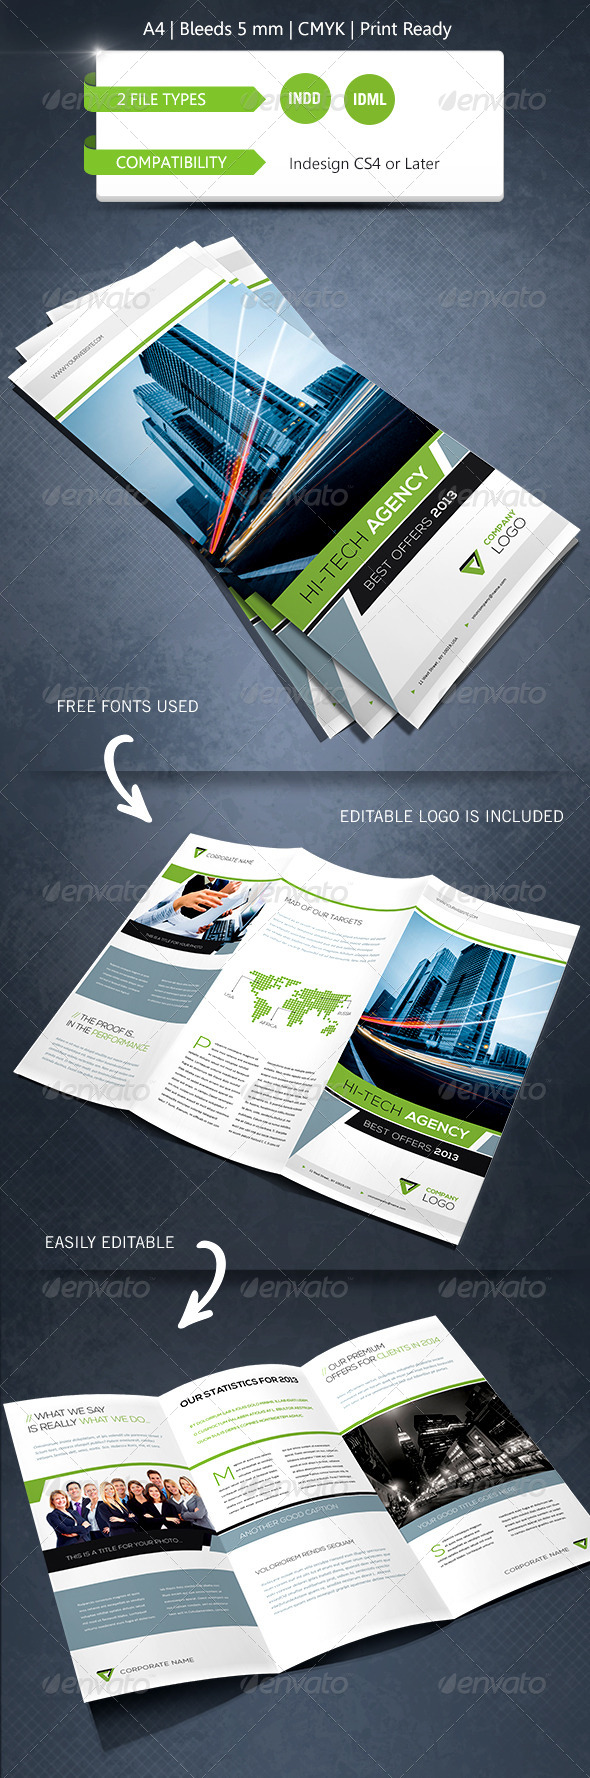 Modern & Corporate Trifold Brochure Template - Informational Brochures